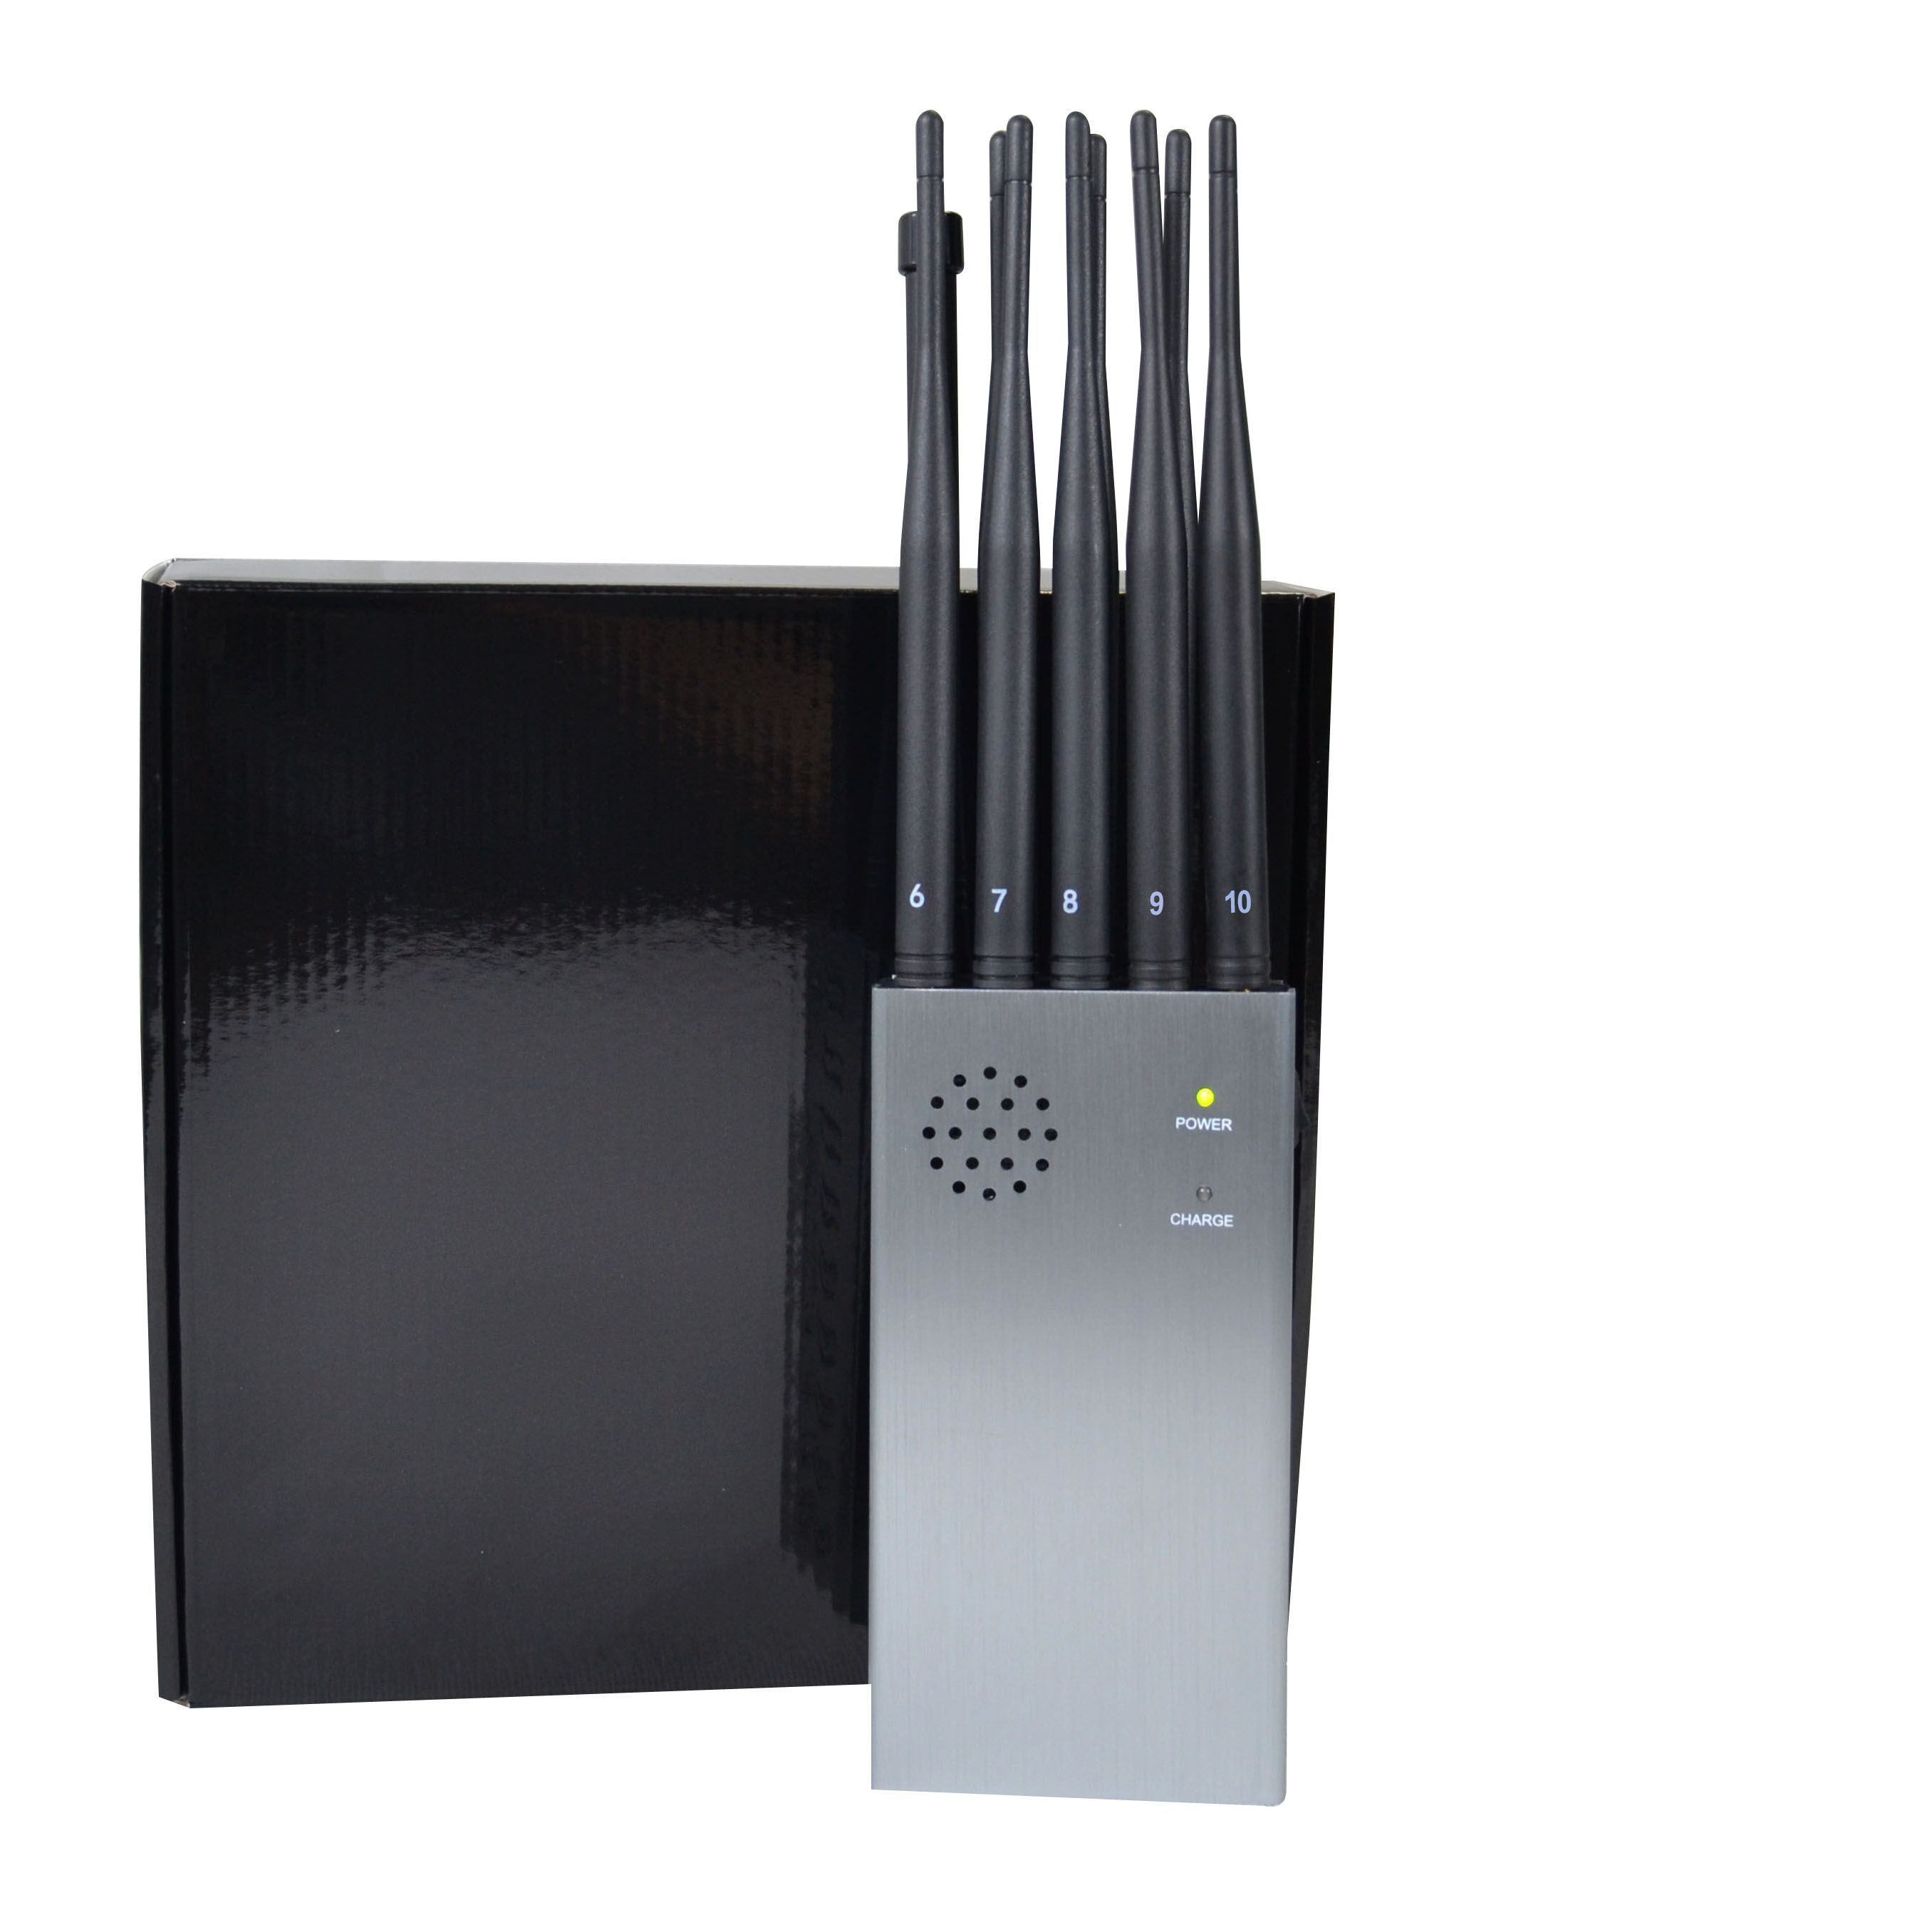 audio jammer device - China King Jammer with Portable 10 Antennas Including 2g 3G 5g 4G WiFi, GPS Remote Control Lojack Signals - China 8000mA Battery Jammer, Large Volume Power Signal Blocker